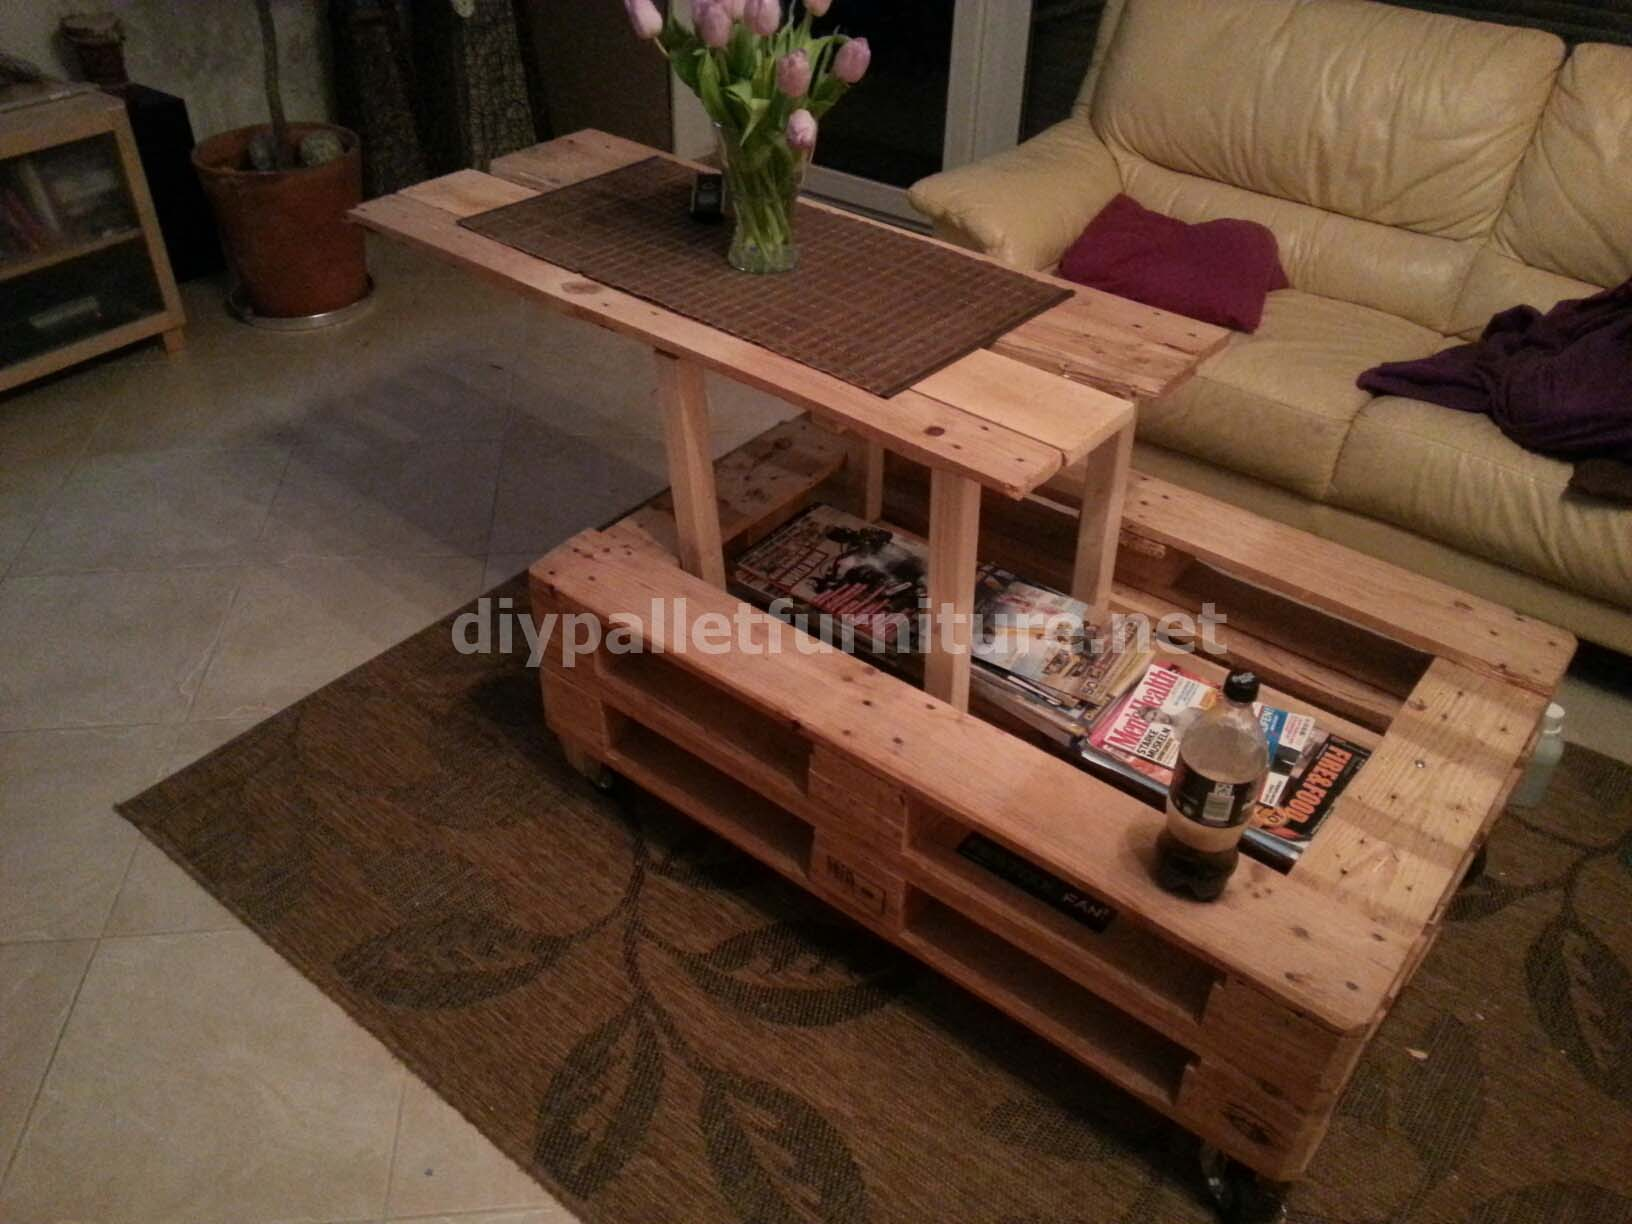 Pneumatic pallet tablediy pallet furniture diy pallet for Table basse palette